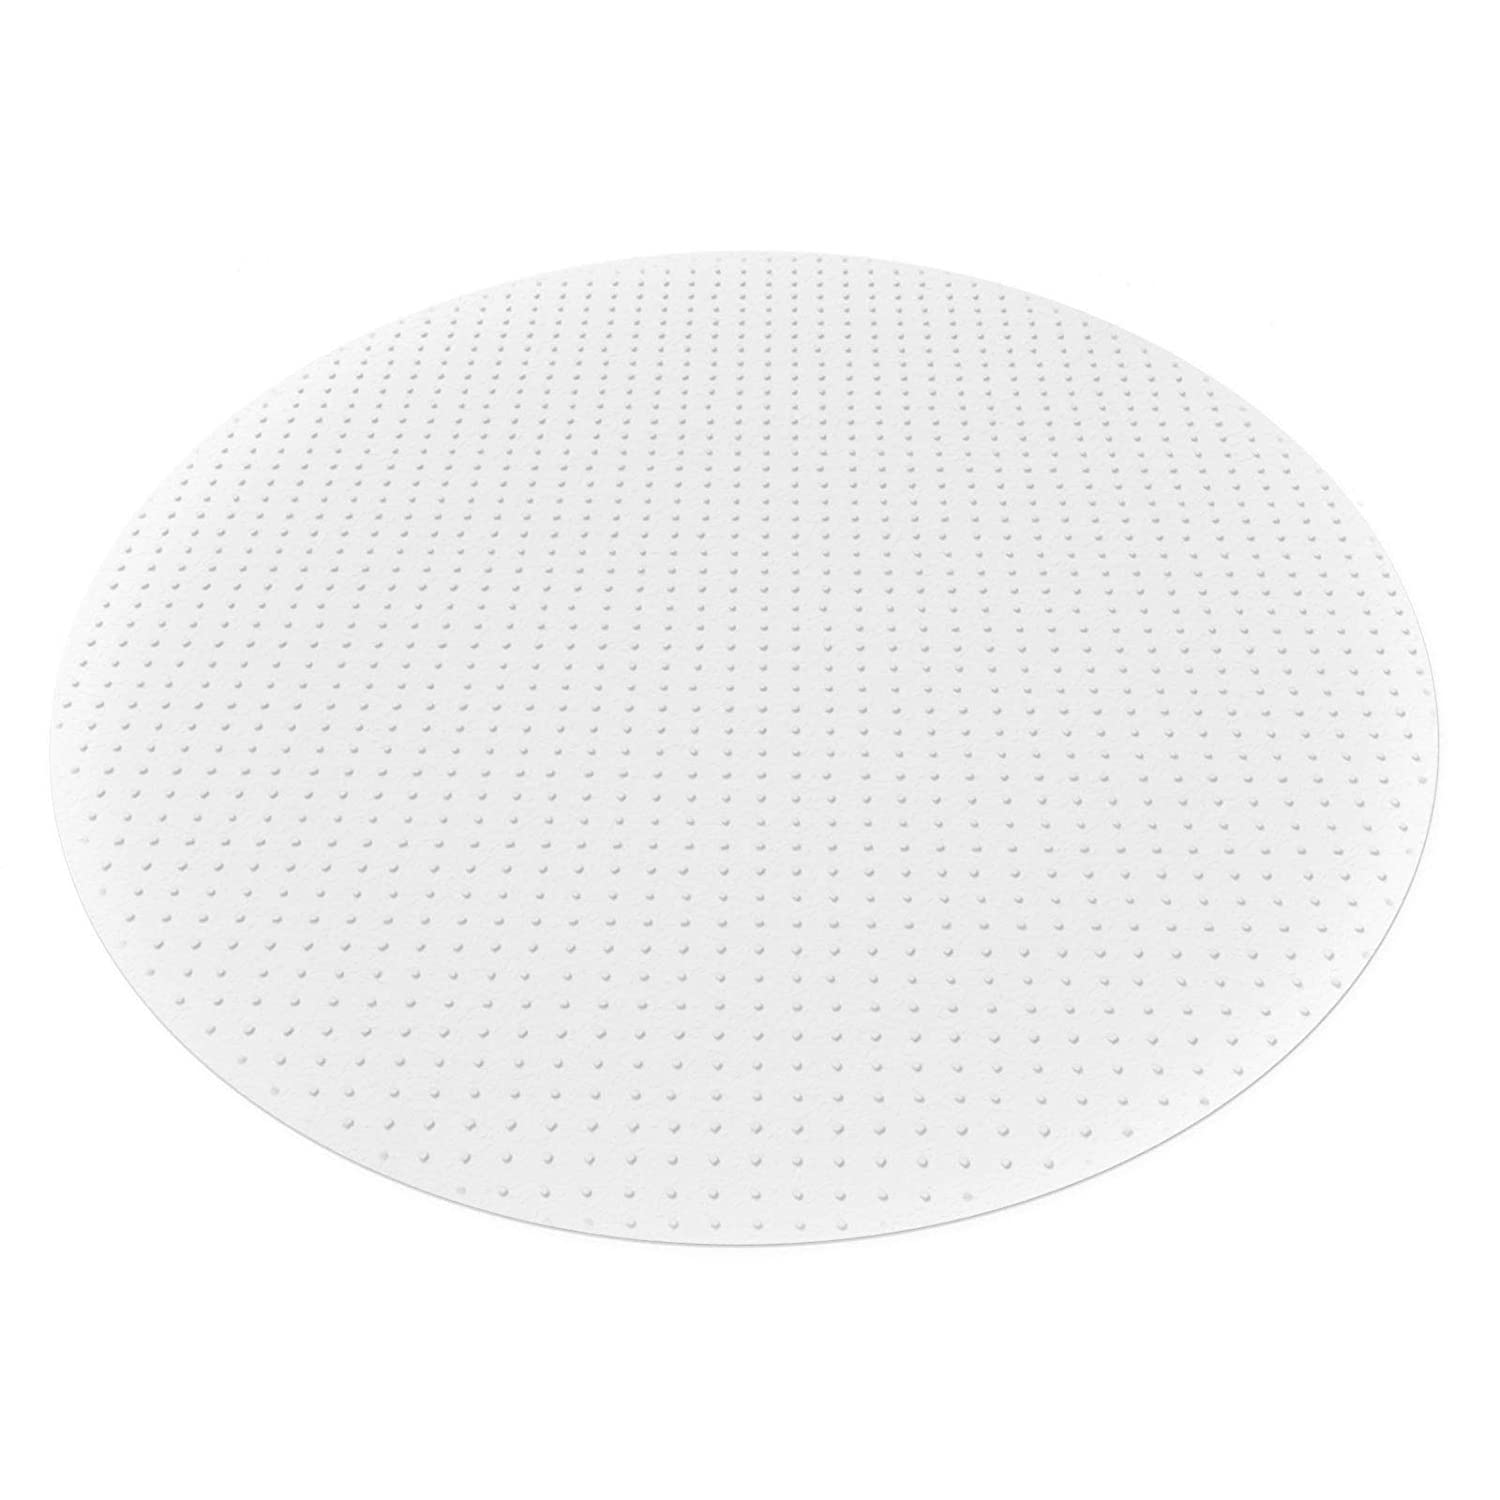 etm Polycarbonate Non Slip Chair Mat for Carpets | Round | 60cm Diameter | 3 Sizes